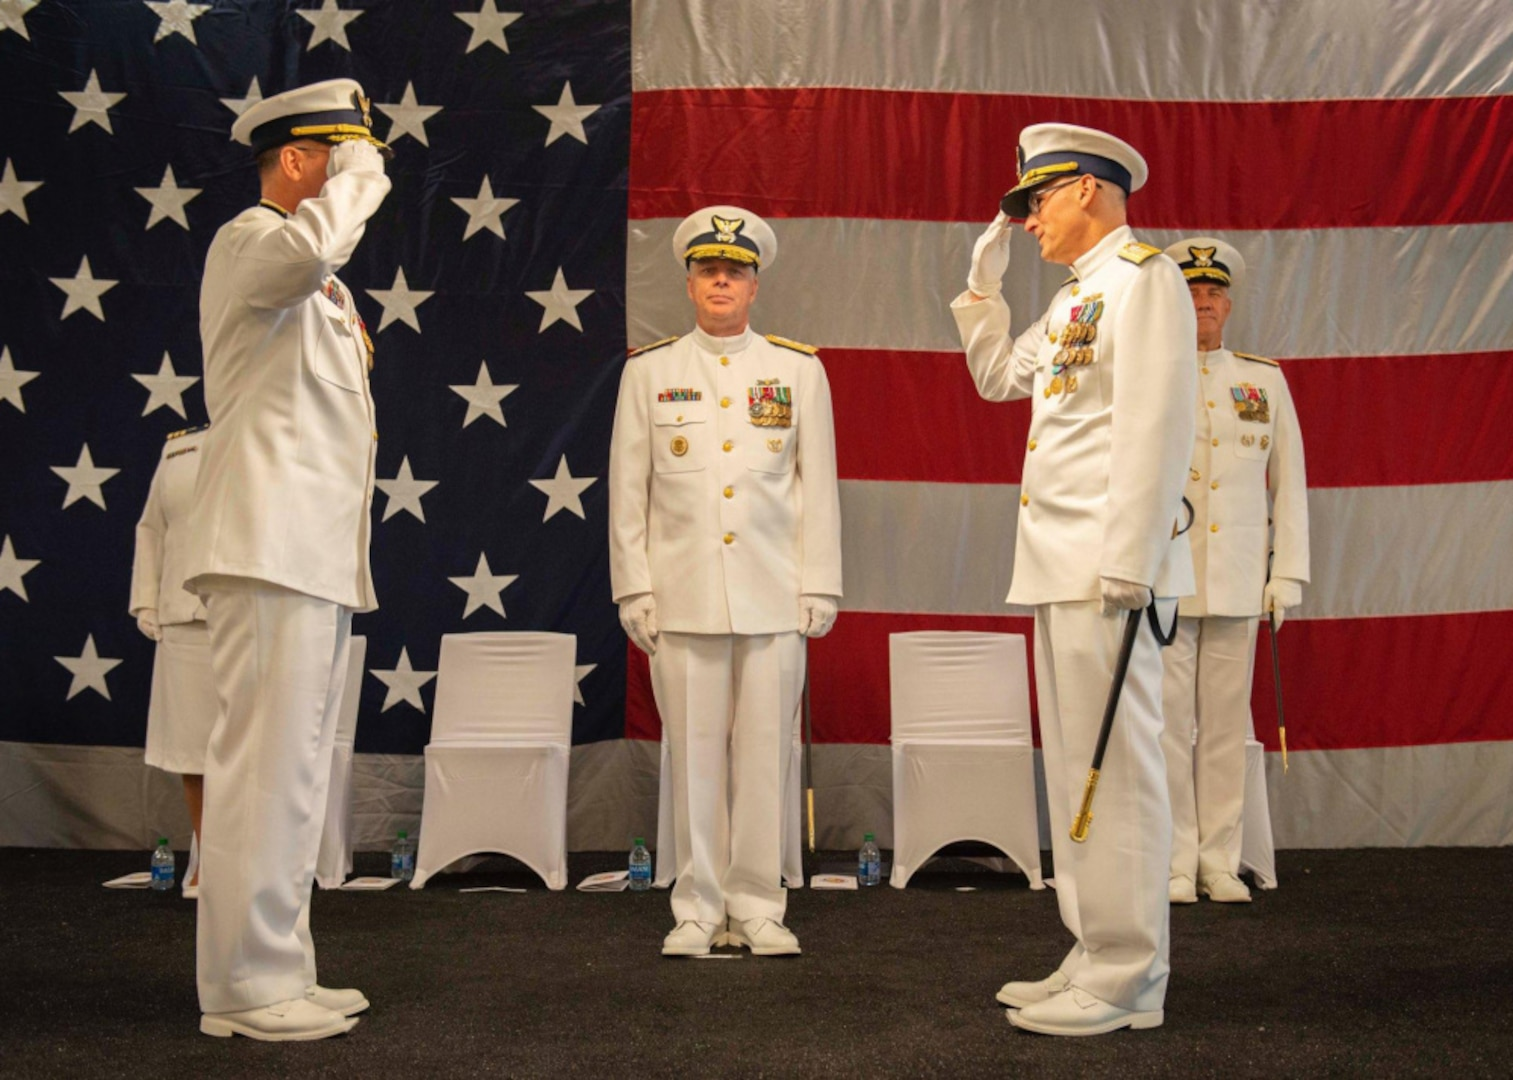 The Coast Guard 8th District personnel held a change-of-command ceremony June 25, 2021 at the Port of New Orleans where Rear Adm. John P. Nadeau transfered command of the Coast Guard 8th District to Rear Adm. Richard V. Timme. Nadeau originally took command of the 8th District in June 2019 and retired after 32 years of service following the change of command. (U.S. Coast Guard photo by Petty Officer 3rd Class John Michelli)